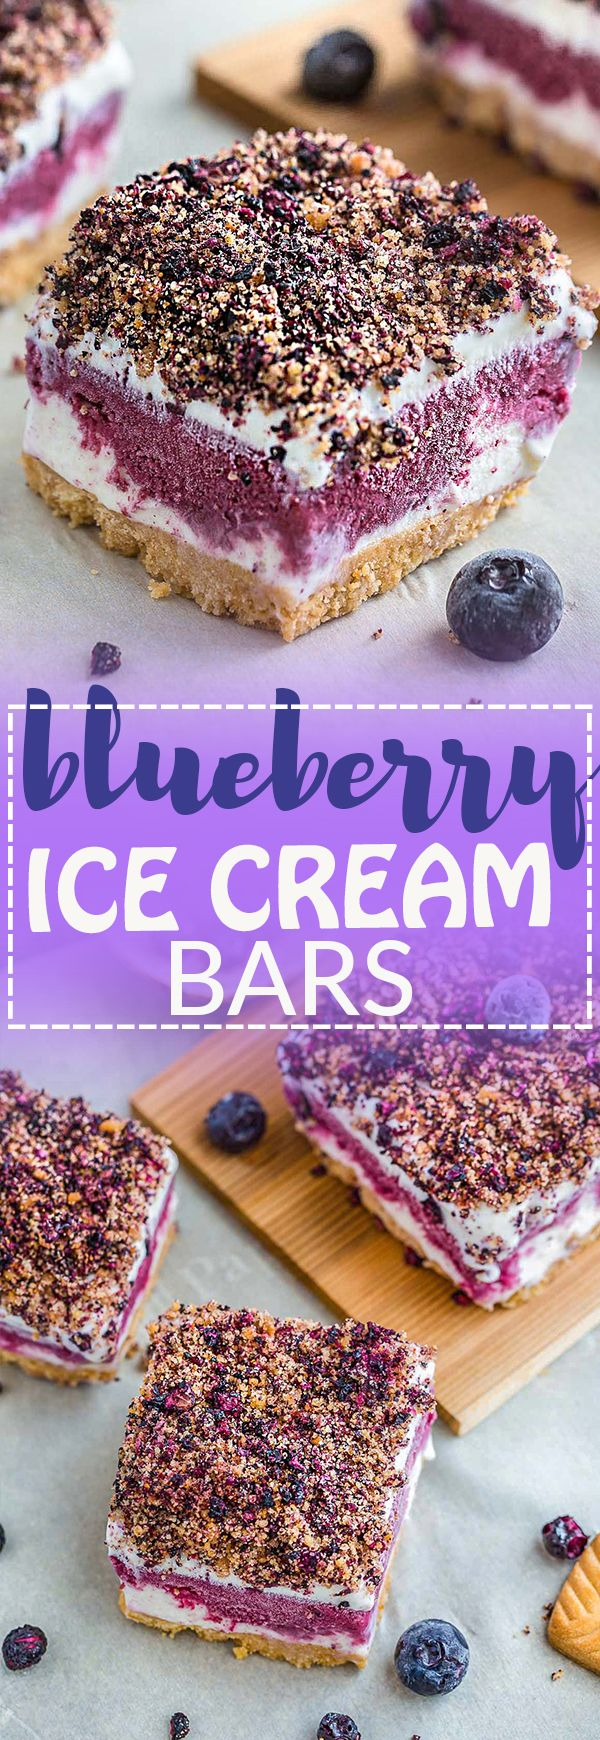 Blueberry Ice Cream Bars are the perfect cool treat on a hot summer day. They're a blueberry version of the classic Strawberry Shortcake Good Humor Ice Cream popsicles. Best of all, they're, so easy to make with delicious layers of vanilla ice cream, blueberry frozen yogurt, a crumbled shortbread topping & a no-bake cookie crust.